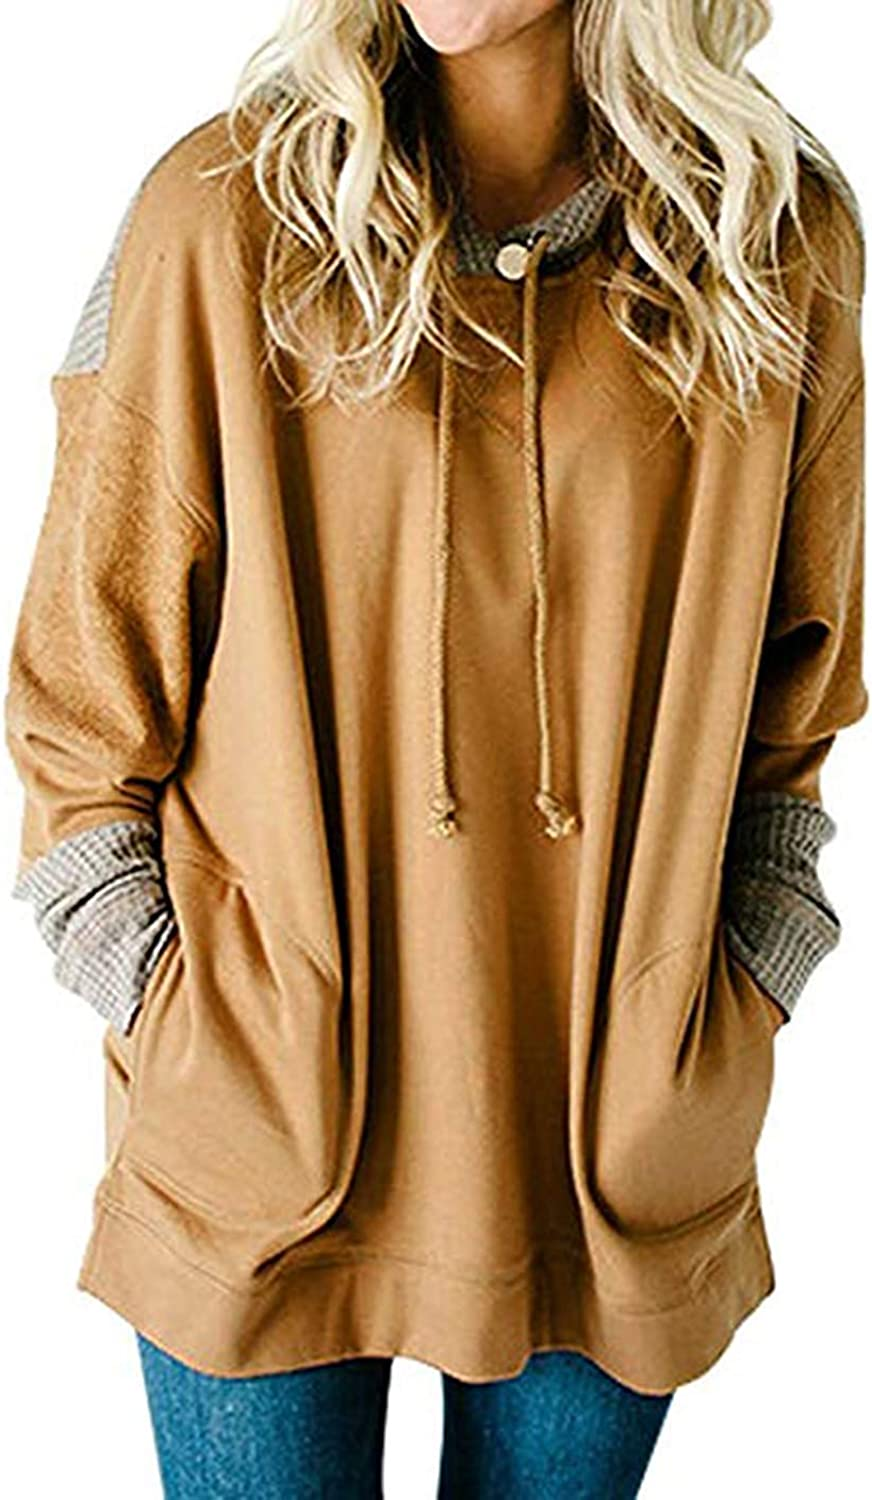 Brilliant sun Women's Waffle Knit Splice Strappy Long Sleeve Hoodies Sweatshirts Plus Size